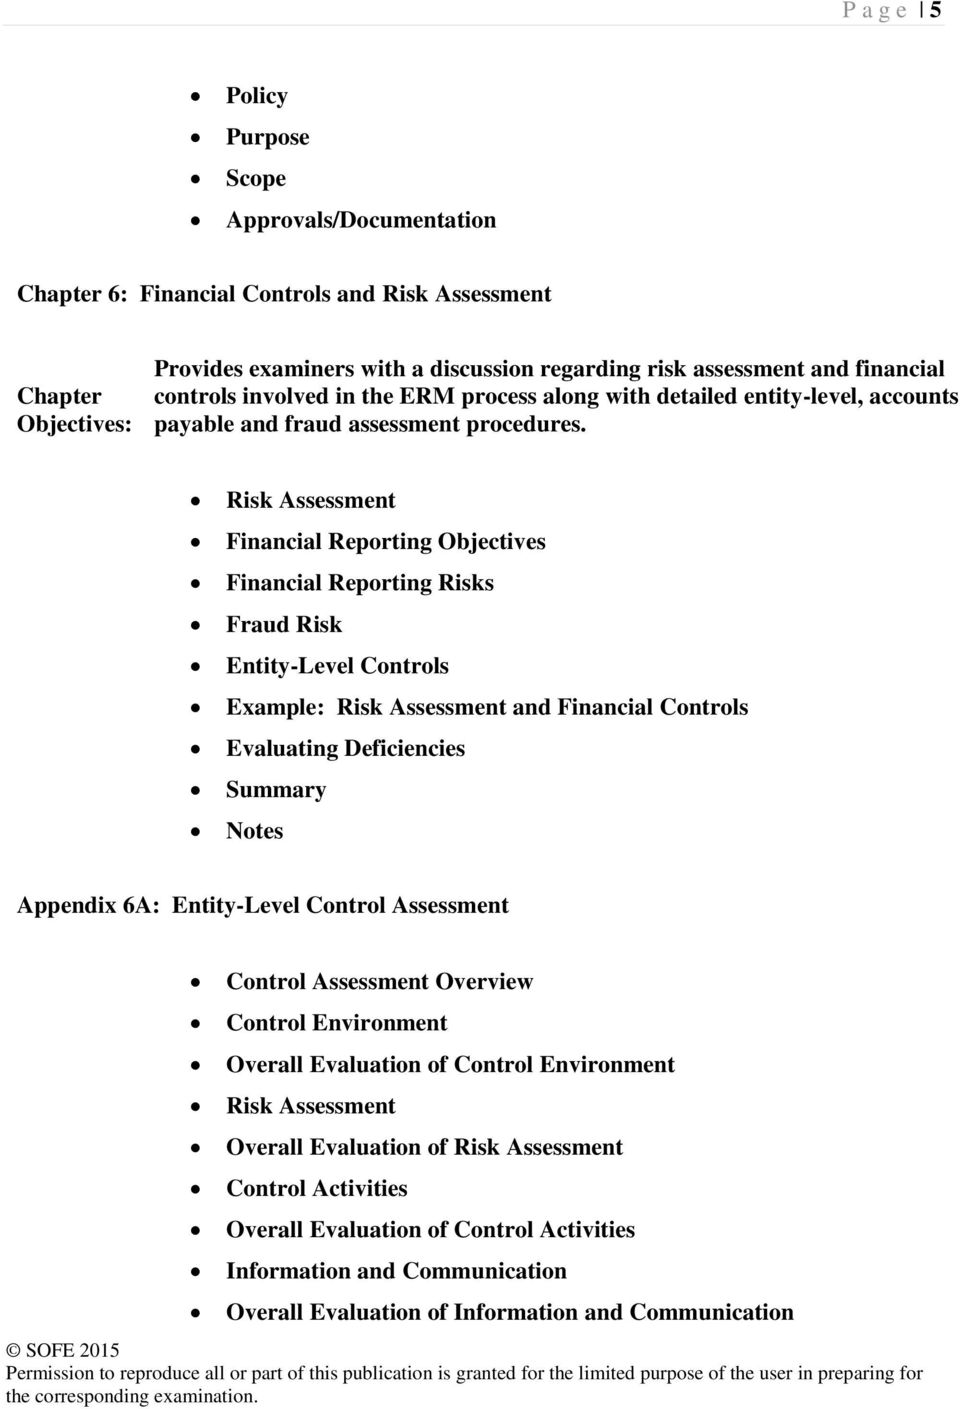 Risk Assessment Financial Reporting Objectives Financial Reporting Risks Fraud Risk Entity-Level Controls Example: Risk Assessment and Financial Controls Evaluating Deficiencies Notes Appendix 6A: